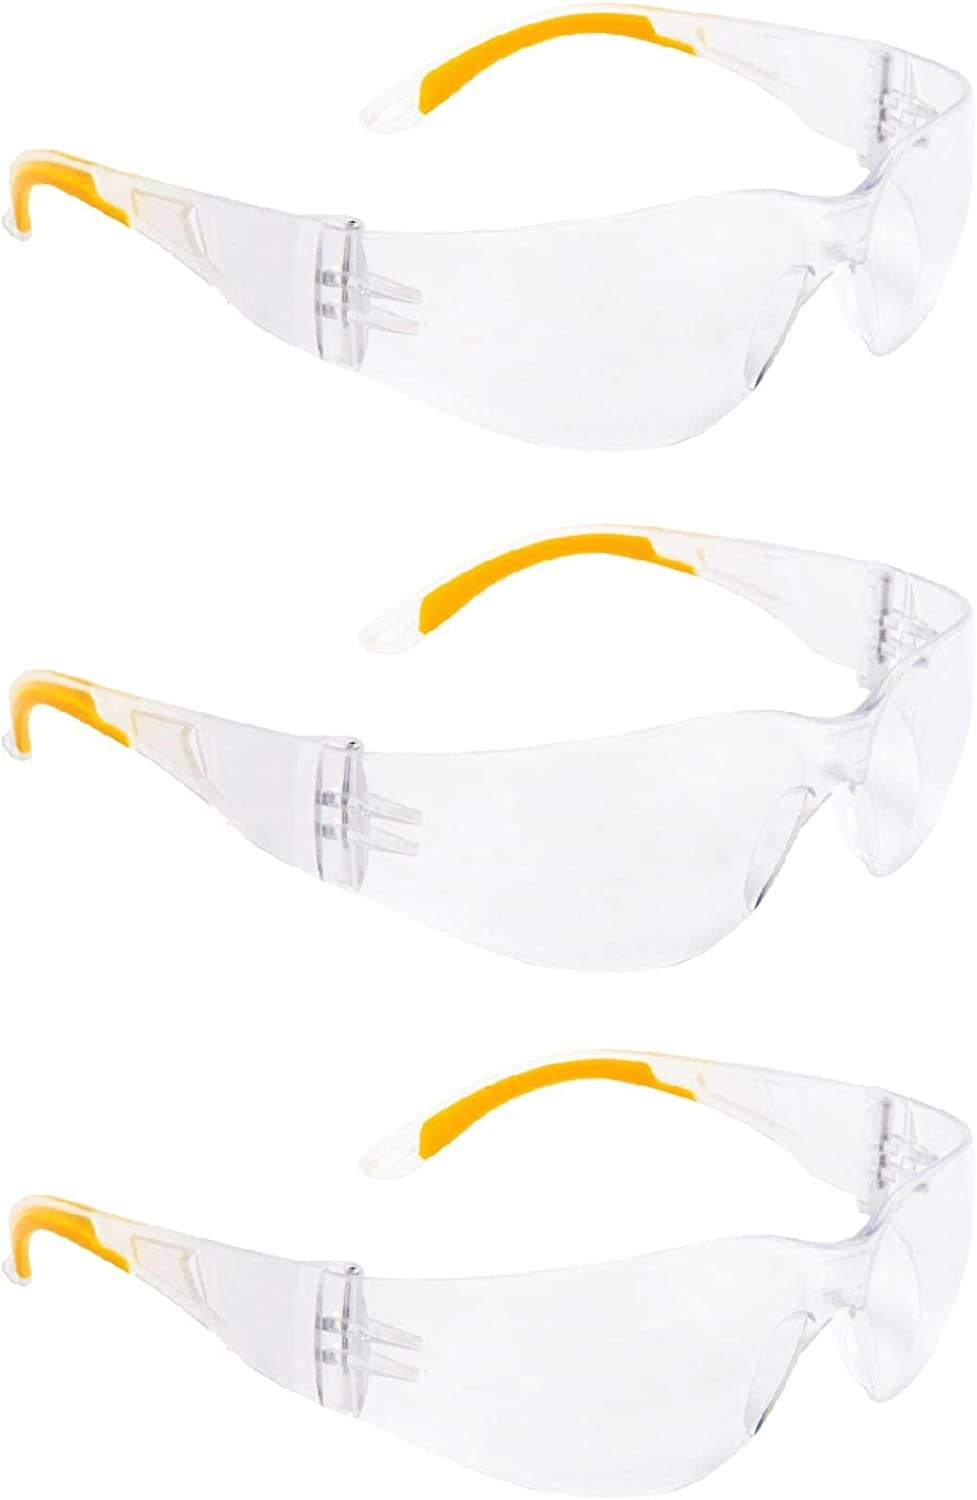 ROAR Safety Glasses Clear Bombing new work Anti-Fog Impact Protectio UV Max 57% OFF Resistant